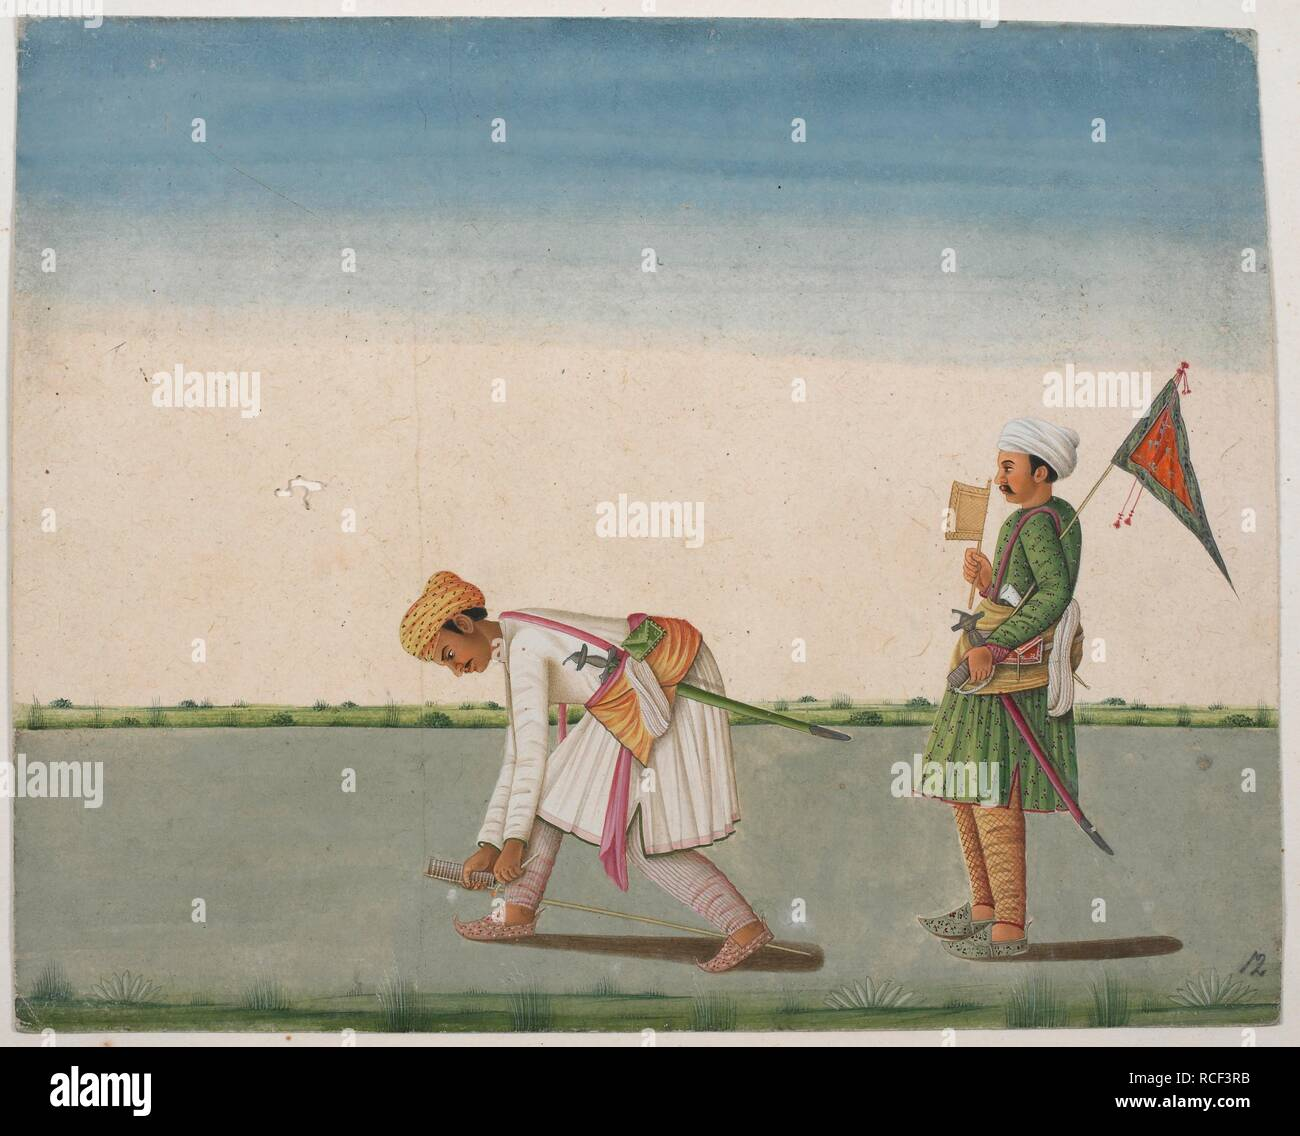 Two Indian men measuring land for revenue purposes. One bending down and using tape. . Two men measuring land for revenue purposes. 1780 - 1790. Watercolour. Source: Add.Or.1020. Author: ANON. - Stock Image